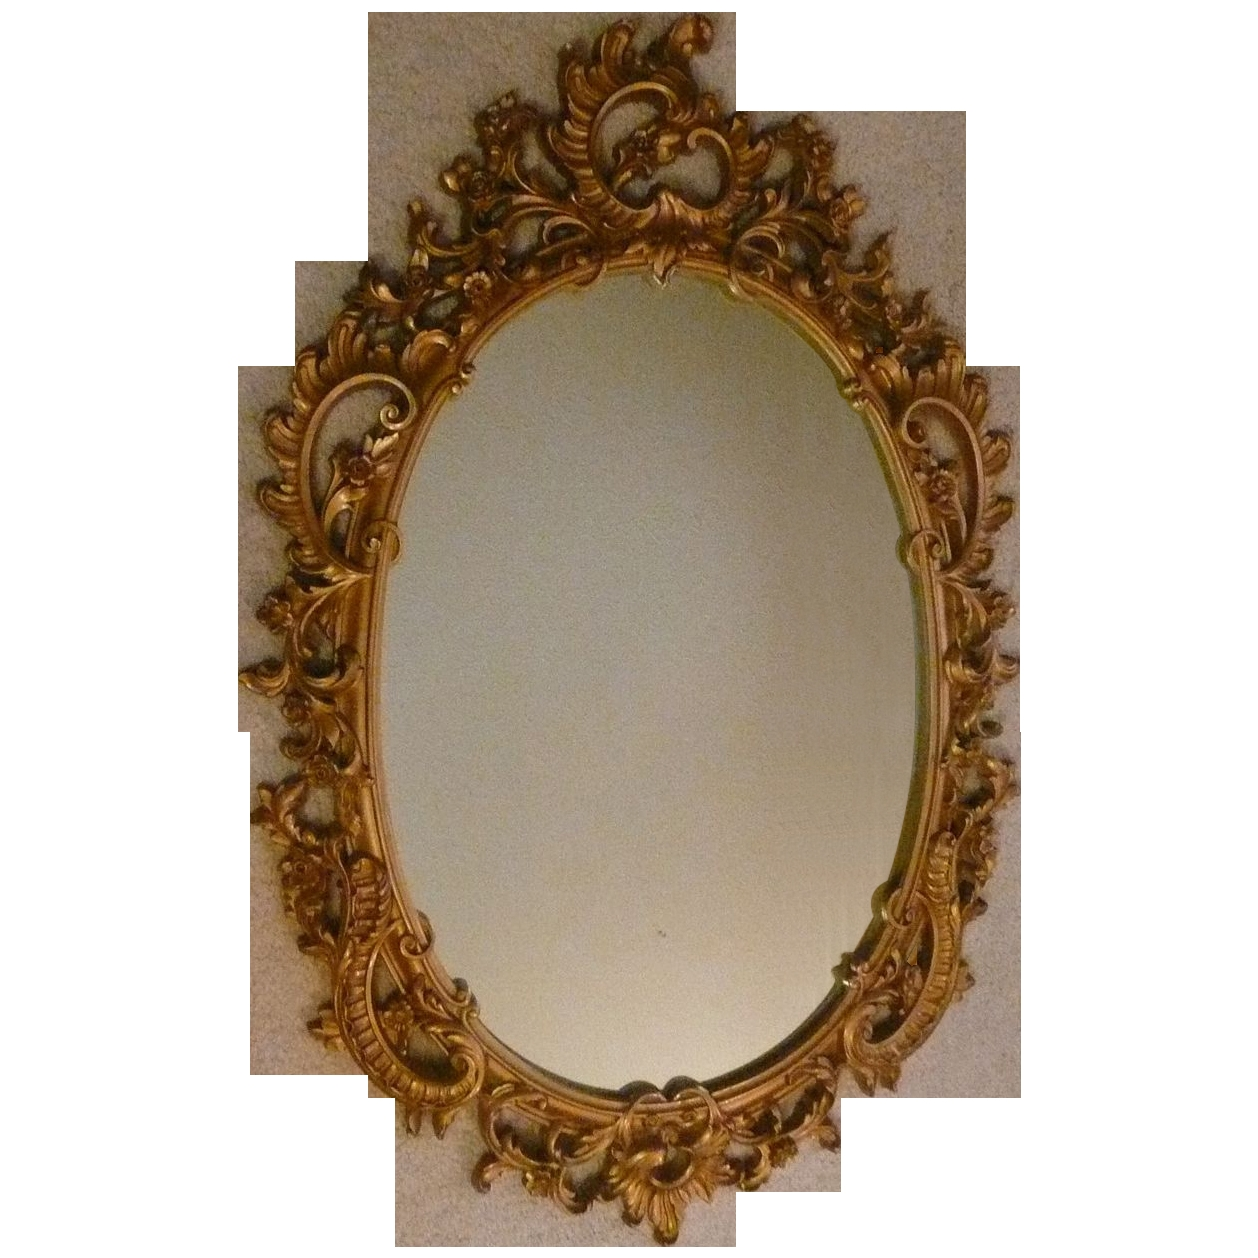 Syroco Wood Composite Mirror With Ornate Scroll From Artgate On Inside Ornate Mirrors (Image 13 of 15)